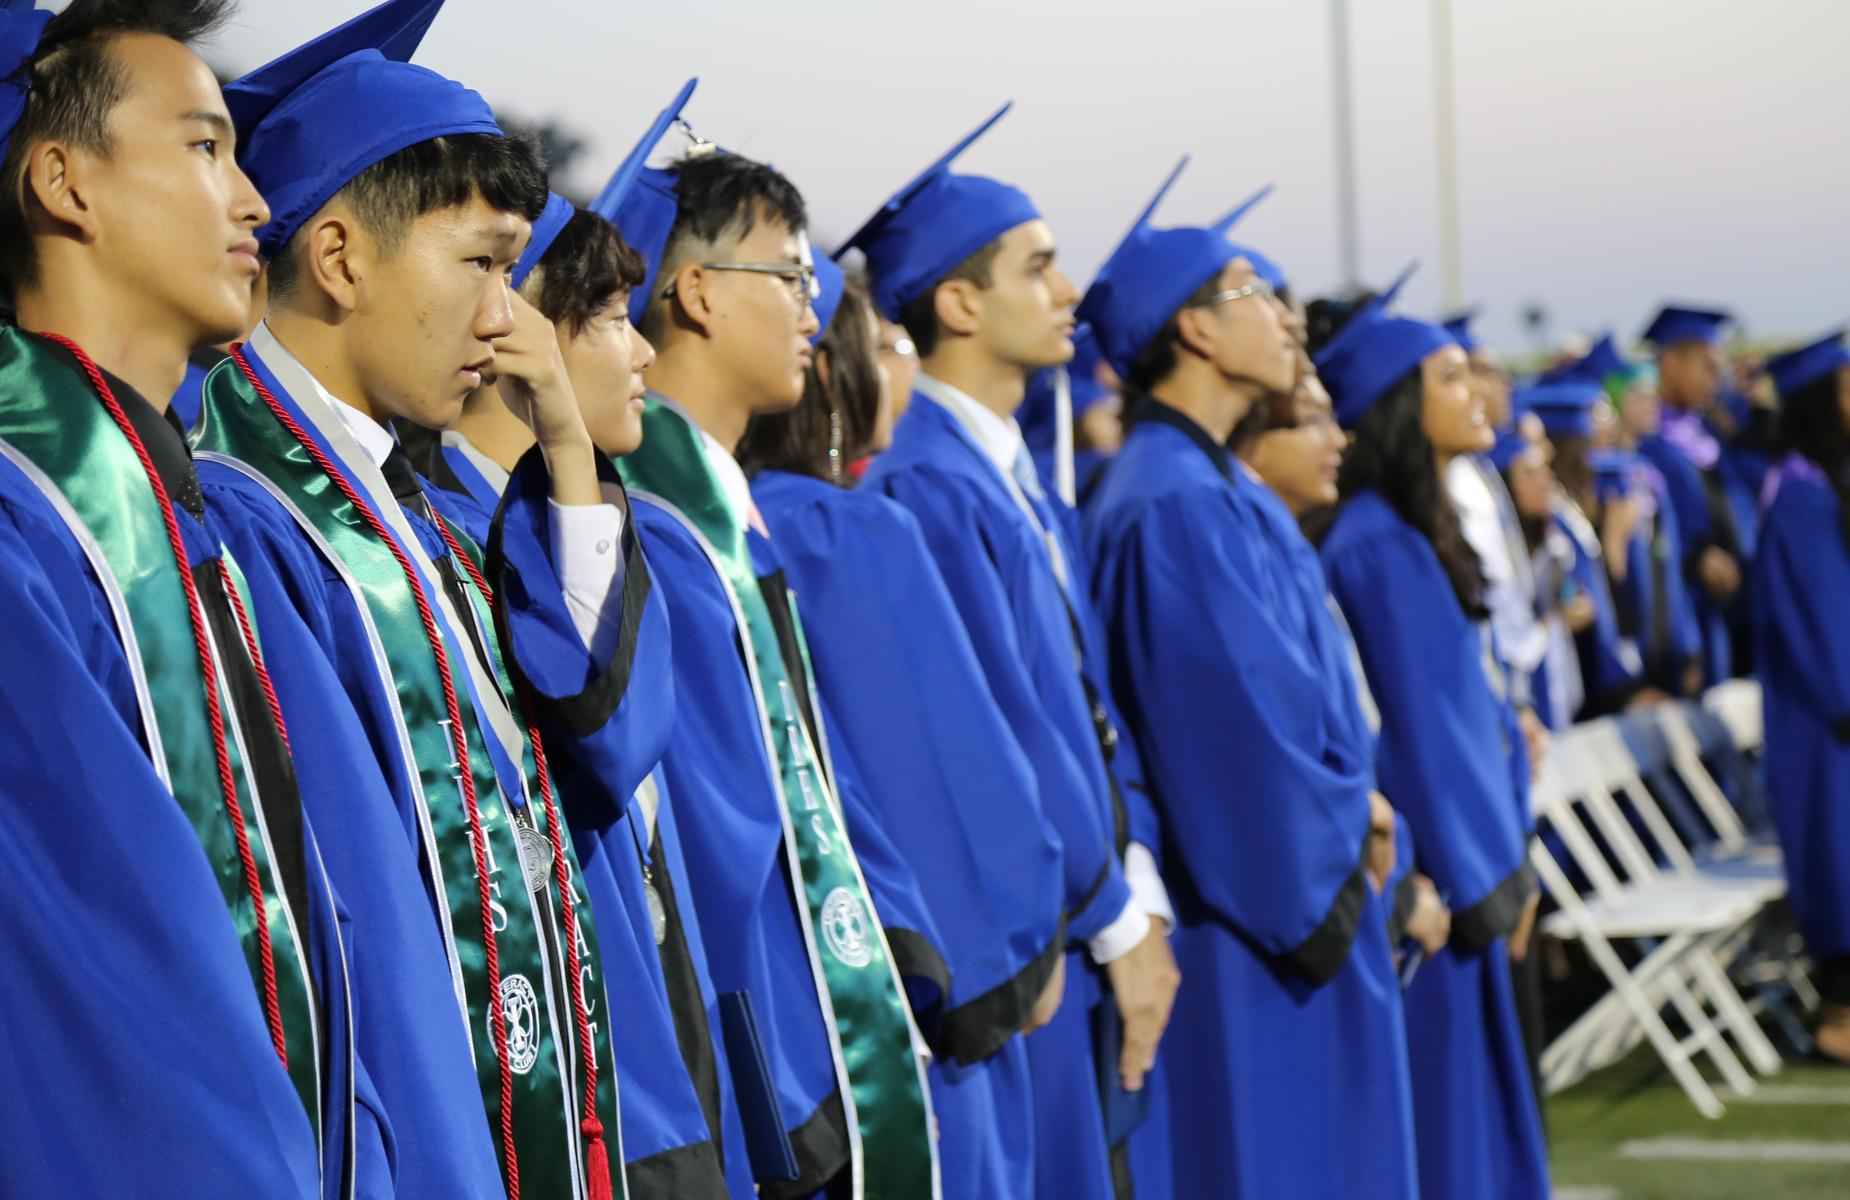 Garey High School Graduates